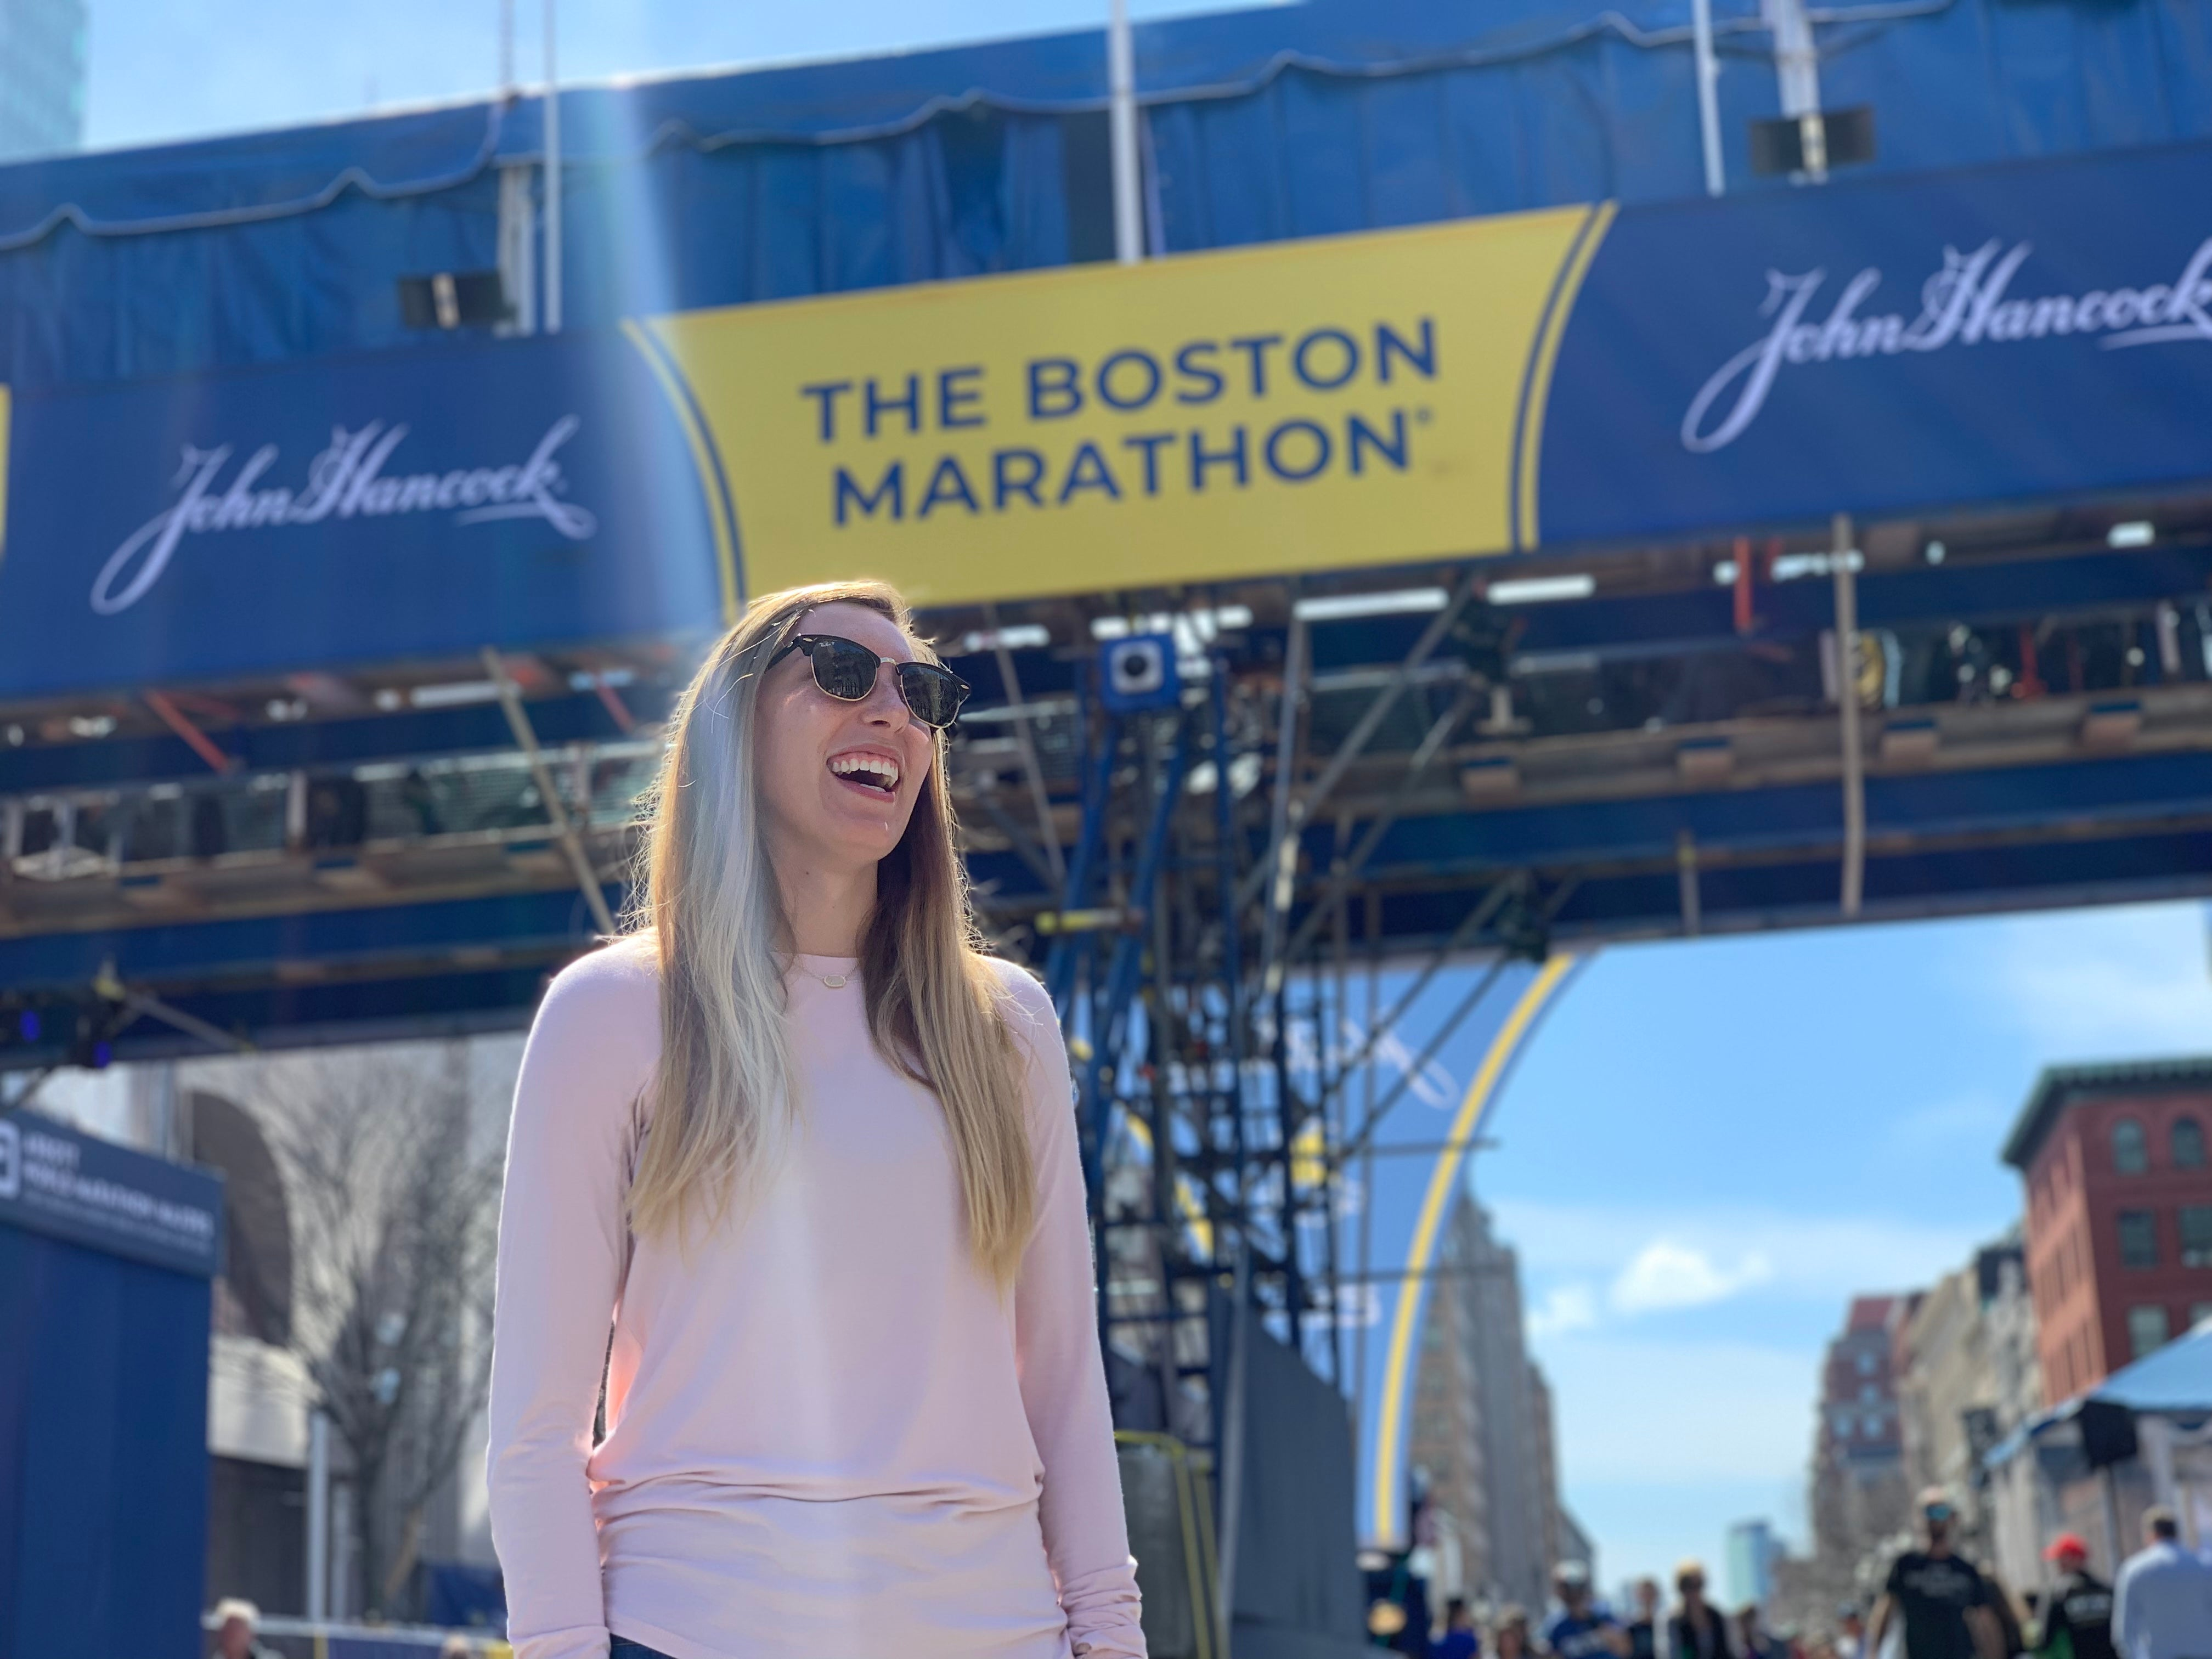 Heather Boston Marathon Finish Line